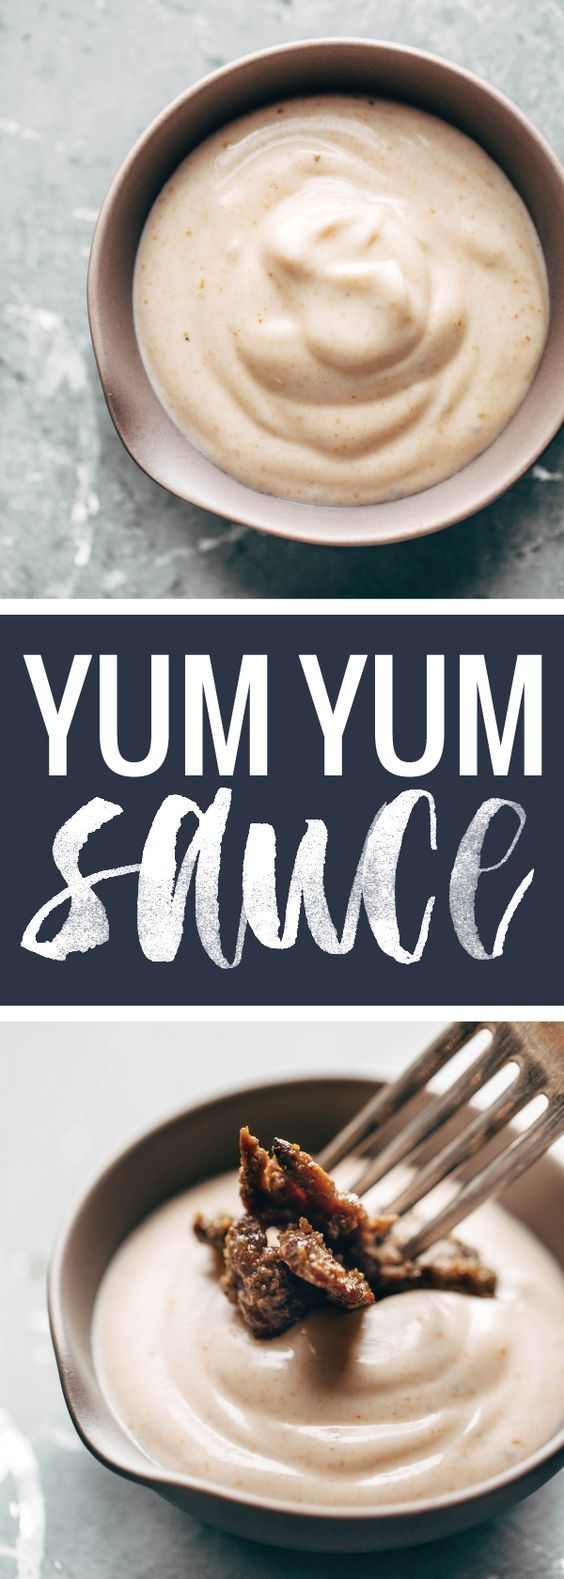 Yum Yum Sauce! just like the sauce from Japanese hibachi restaurants - and it's SO EASY. Perfect with grilled chicken, steak, veggies, rice bowls, wraps, and more. | pinchofyum.com